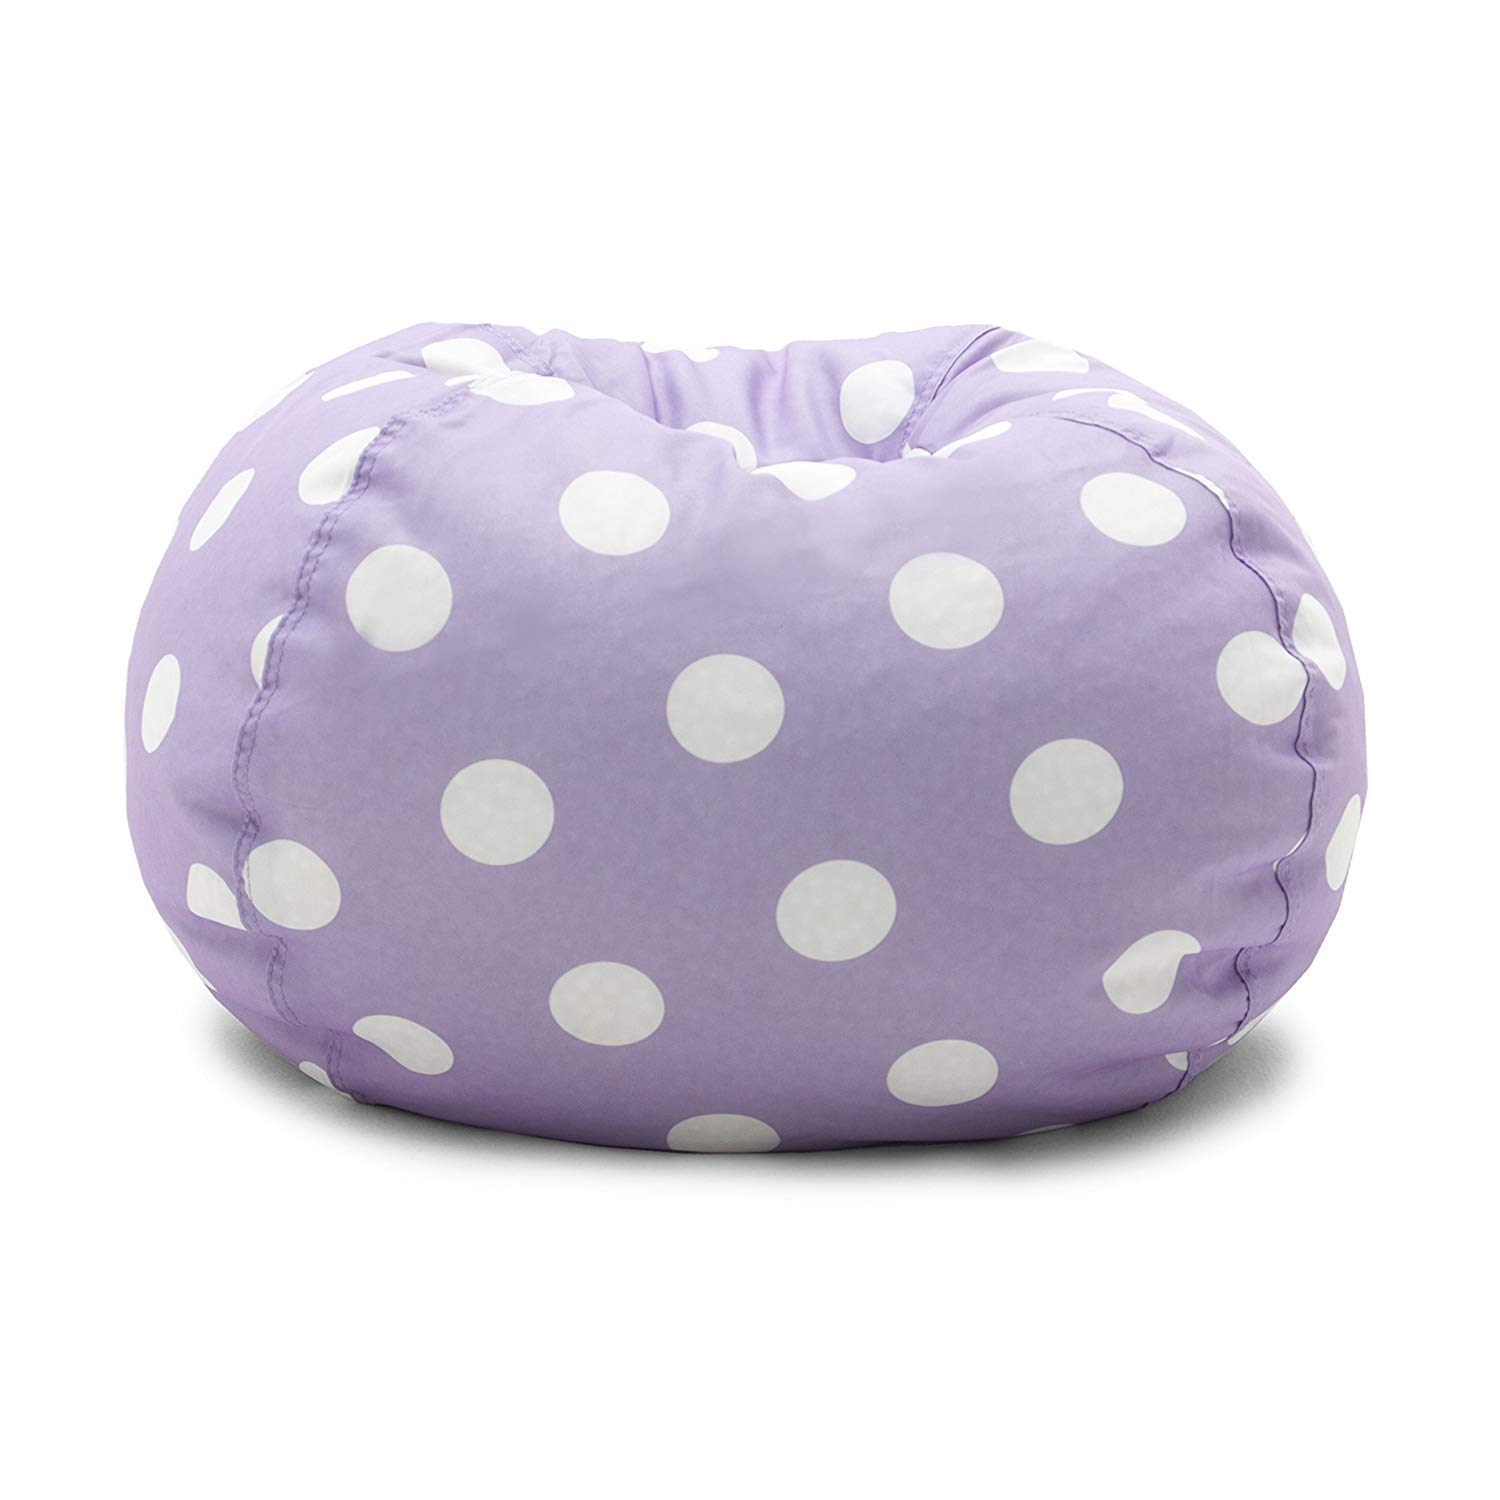 Big Joe 0630252 Lavender Polka Dot Classic Bean Bag Chair